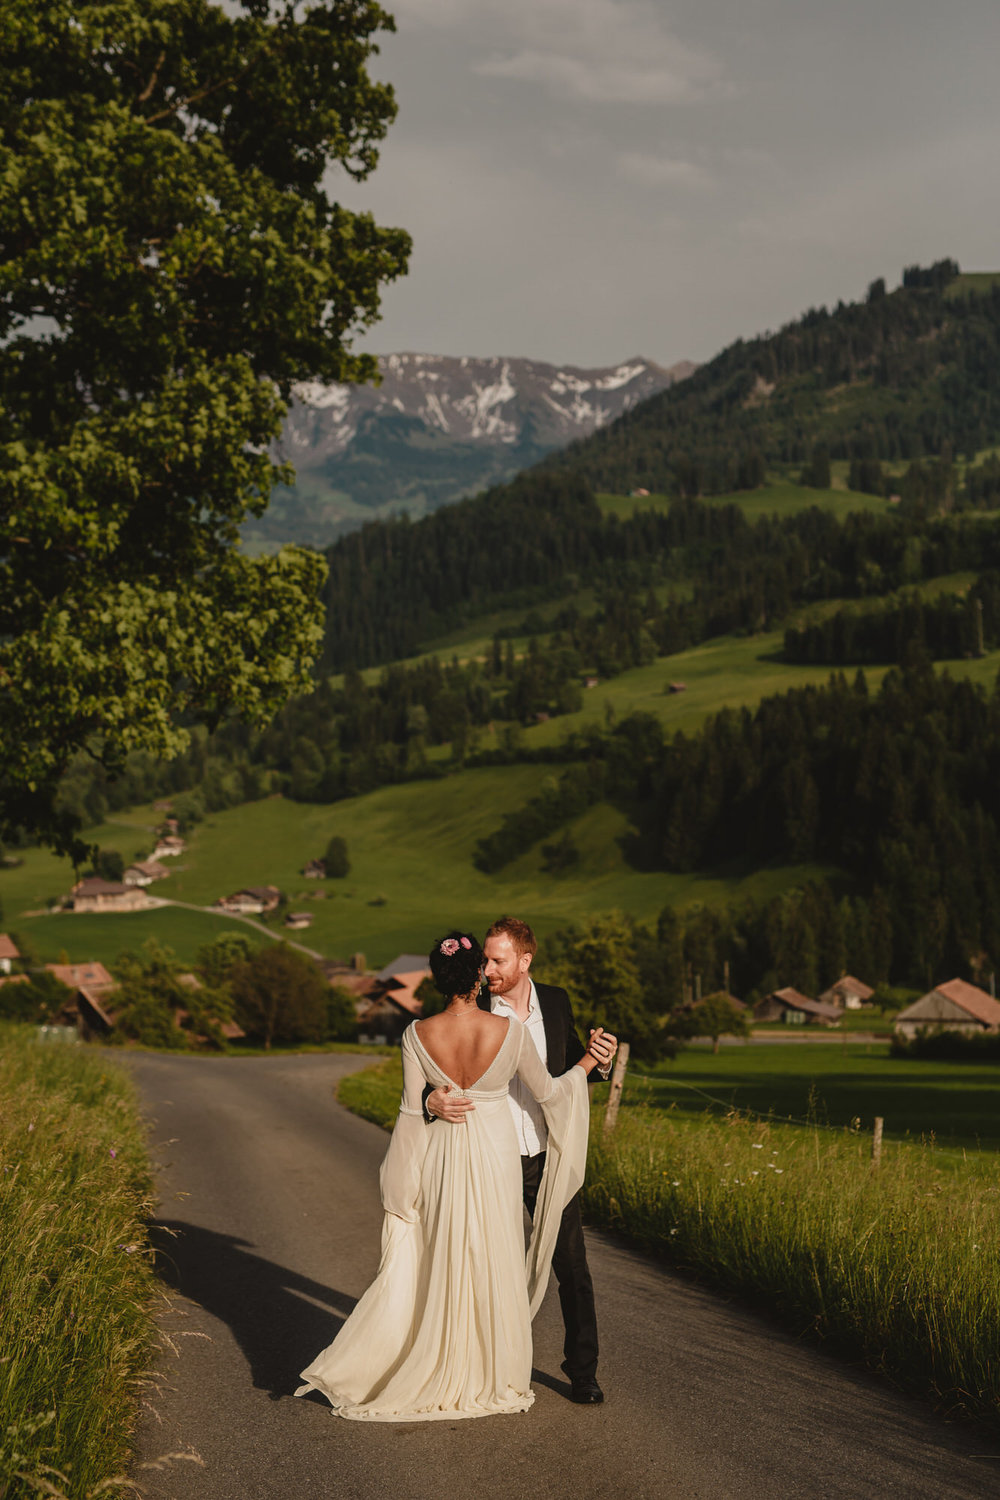 SWITZERLAND WEDDING SHOOT - JENNIFER PICARD PHOTOGRAPHY - SWITZERLAND WEDDING PHOTOGRAPHER - VANCOUVER WEDDING PHOTOGRAPHER -  (215).jpg